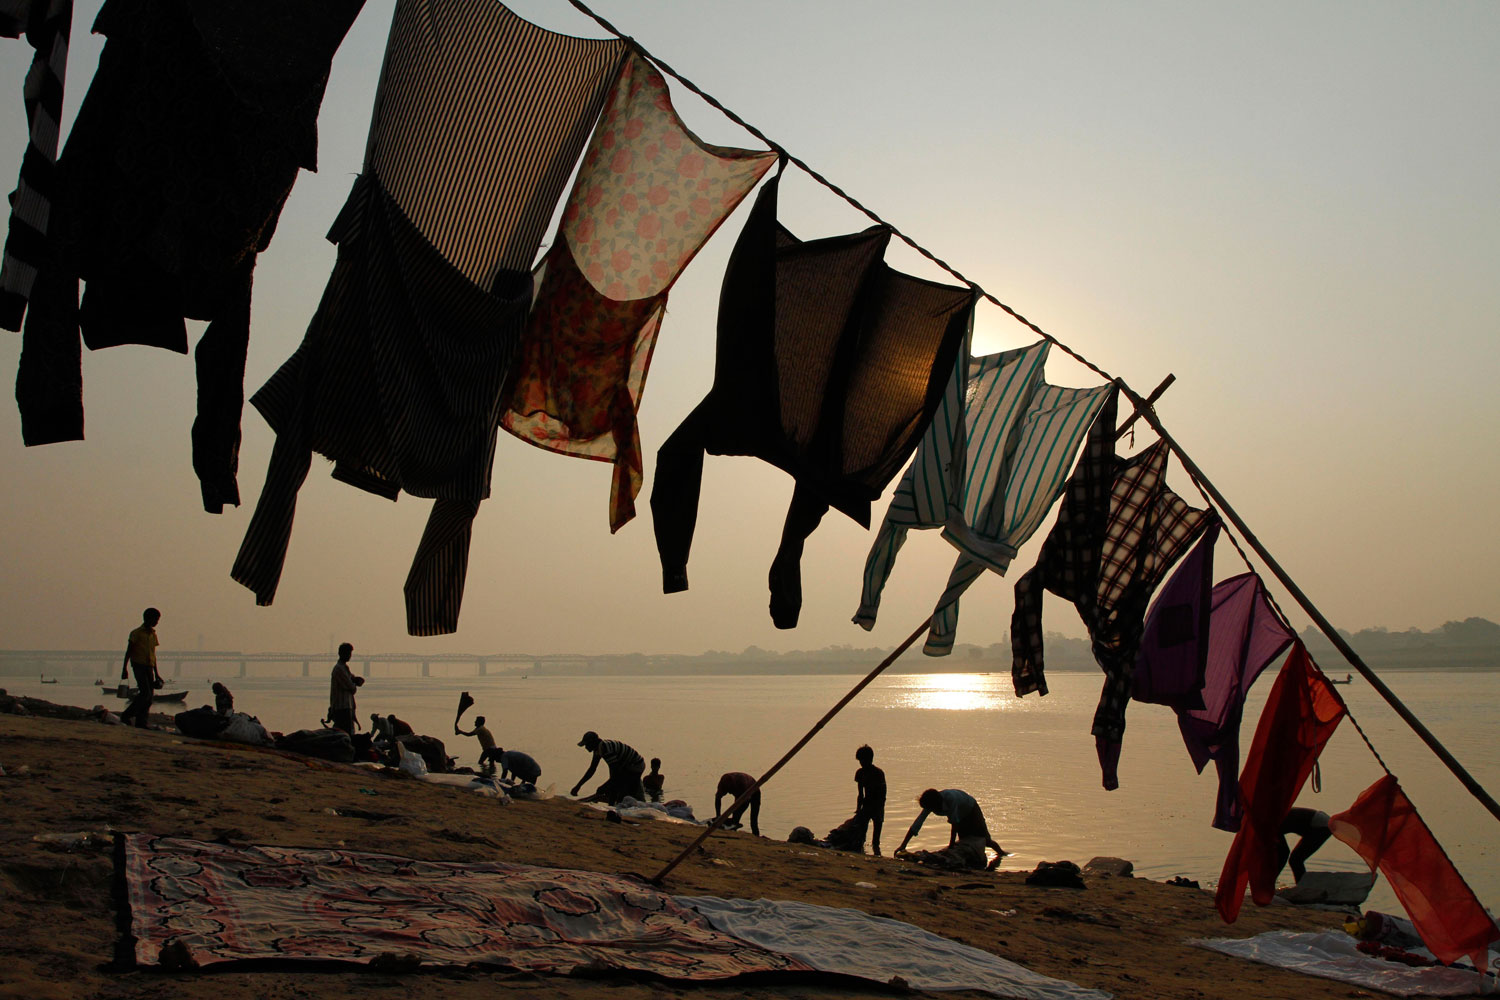 October 19, 2011. Indian washermen wash clothes at the banks of the River Yamuna on the outskirts of Allahabad, India.